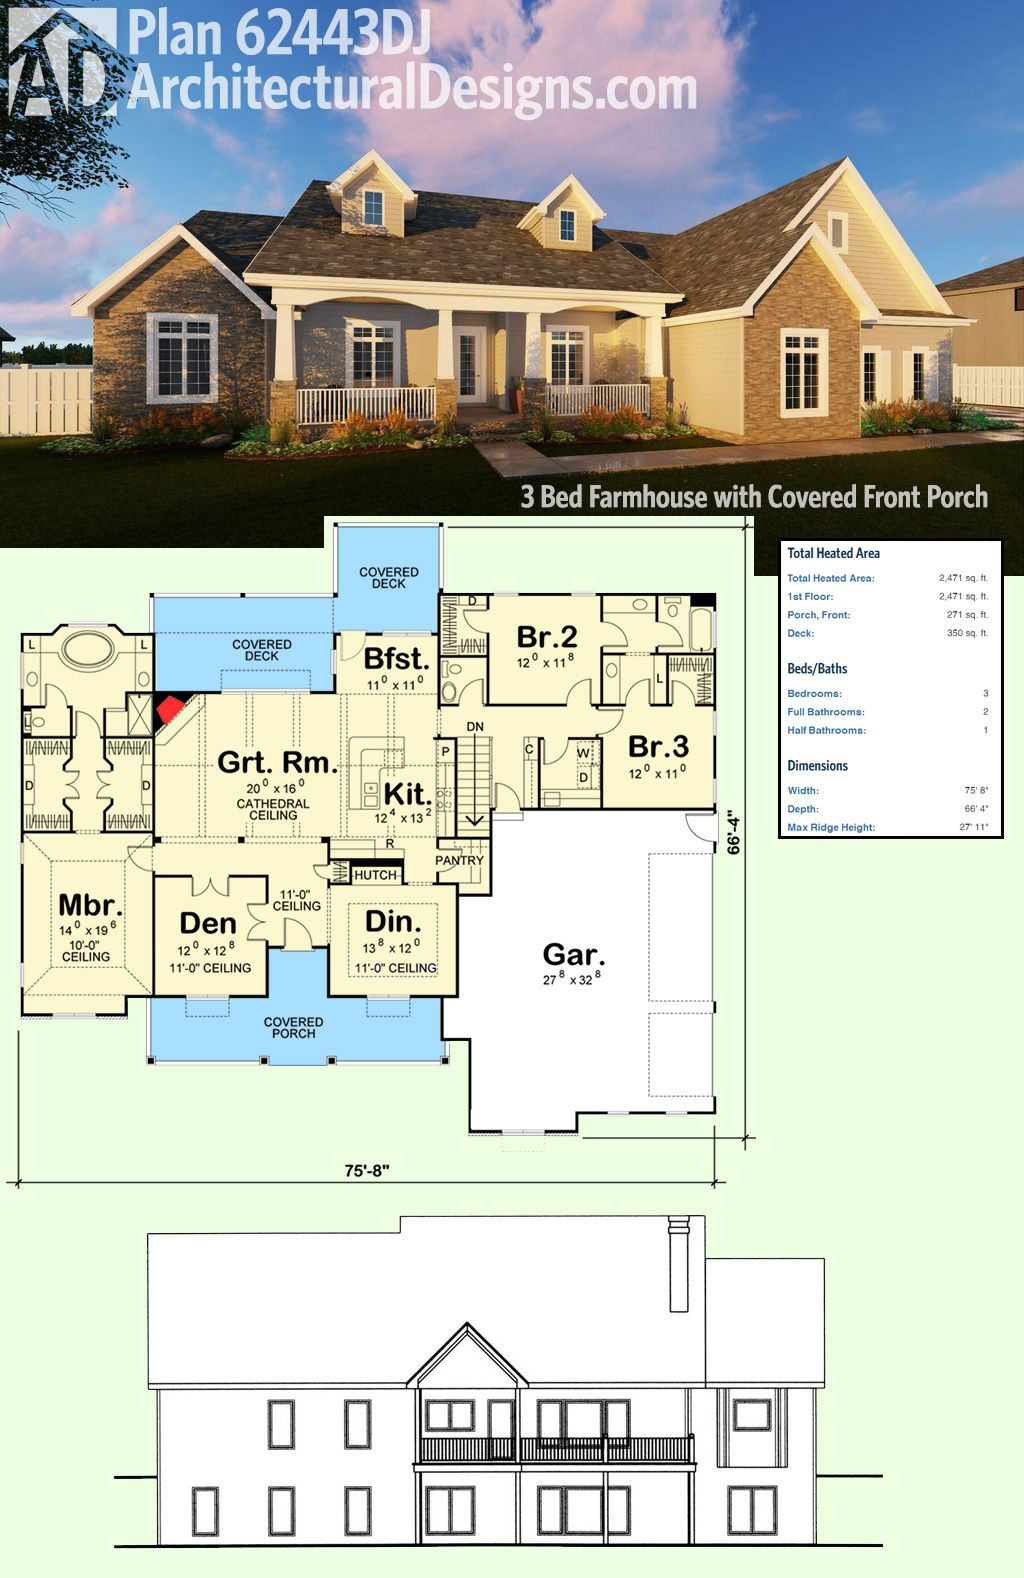 Plan 62443DJ: 3 Bed Farmhouse with Covered Front Porch | Pinterest ...